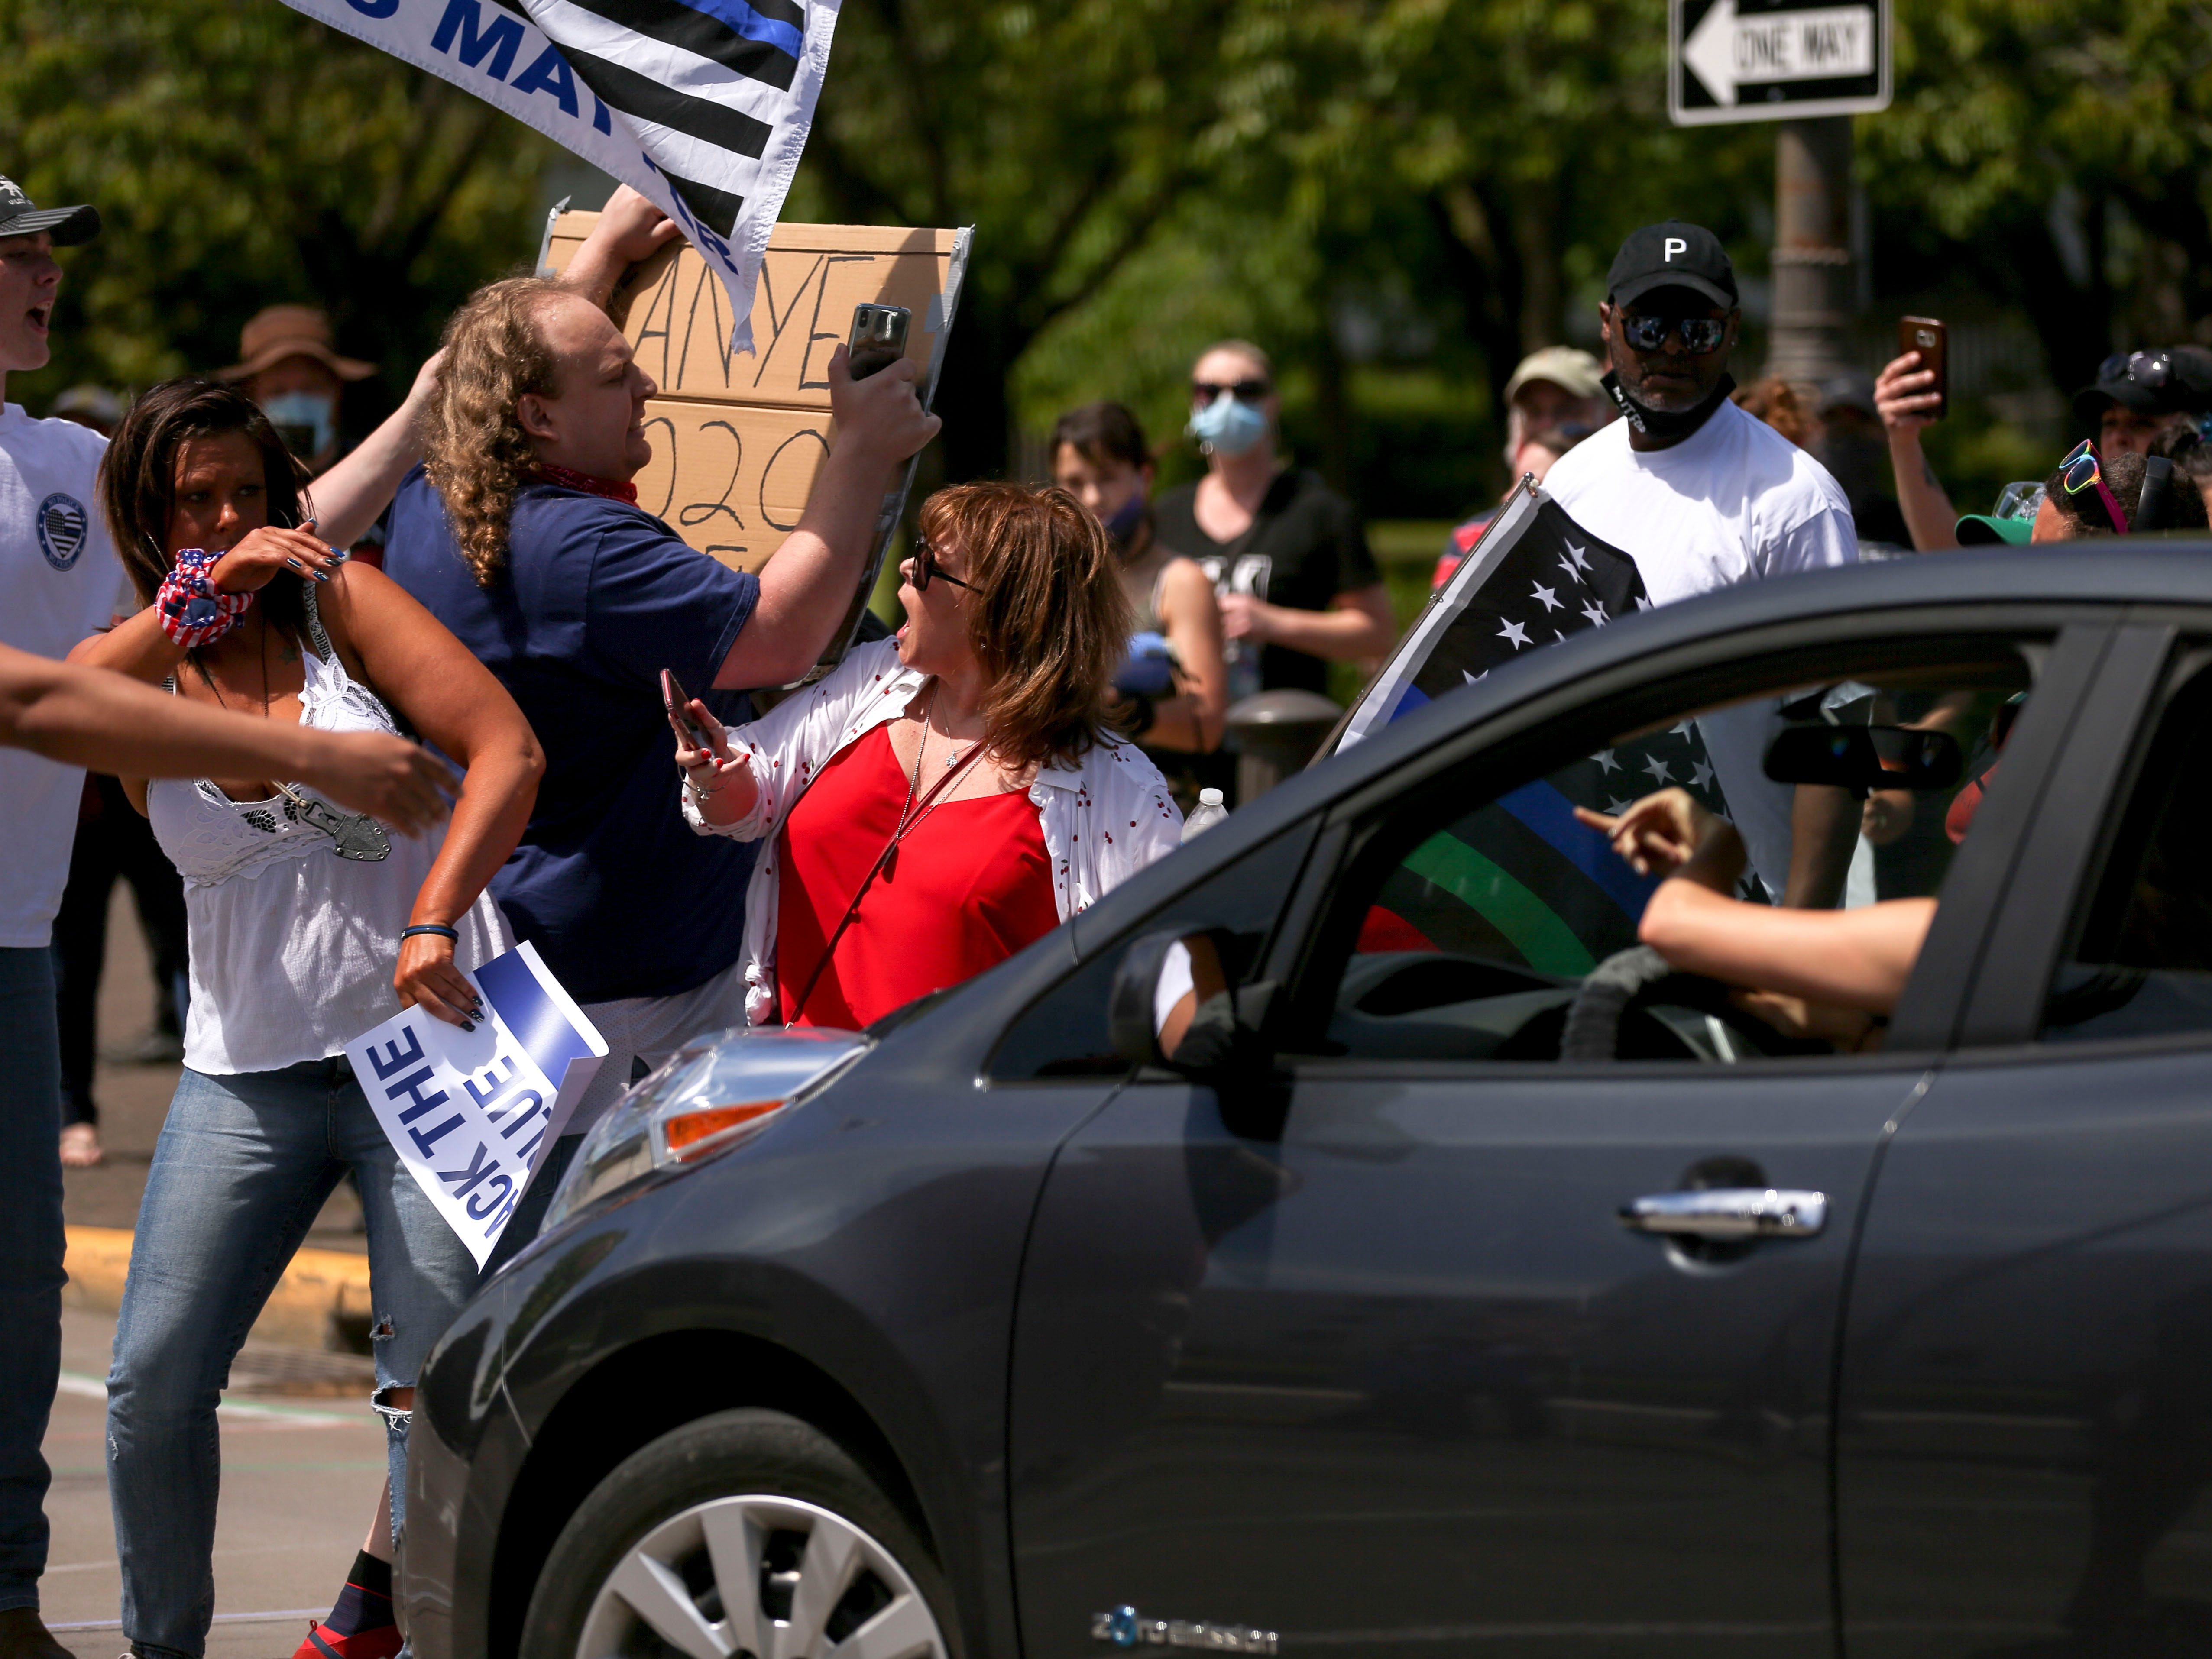 """Pro-police and anti-police violence demonstrators work together to remove a person blocking traffic while holding a """"Kanye 2020"""" sign during multiple rallies at the Oregon State Capitol, in Salem, Oregon, on Saturday, July 11, 2020."""